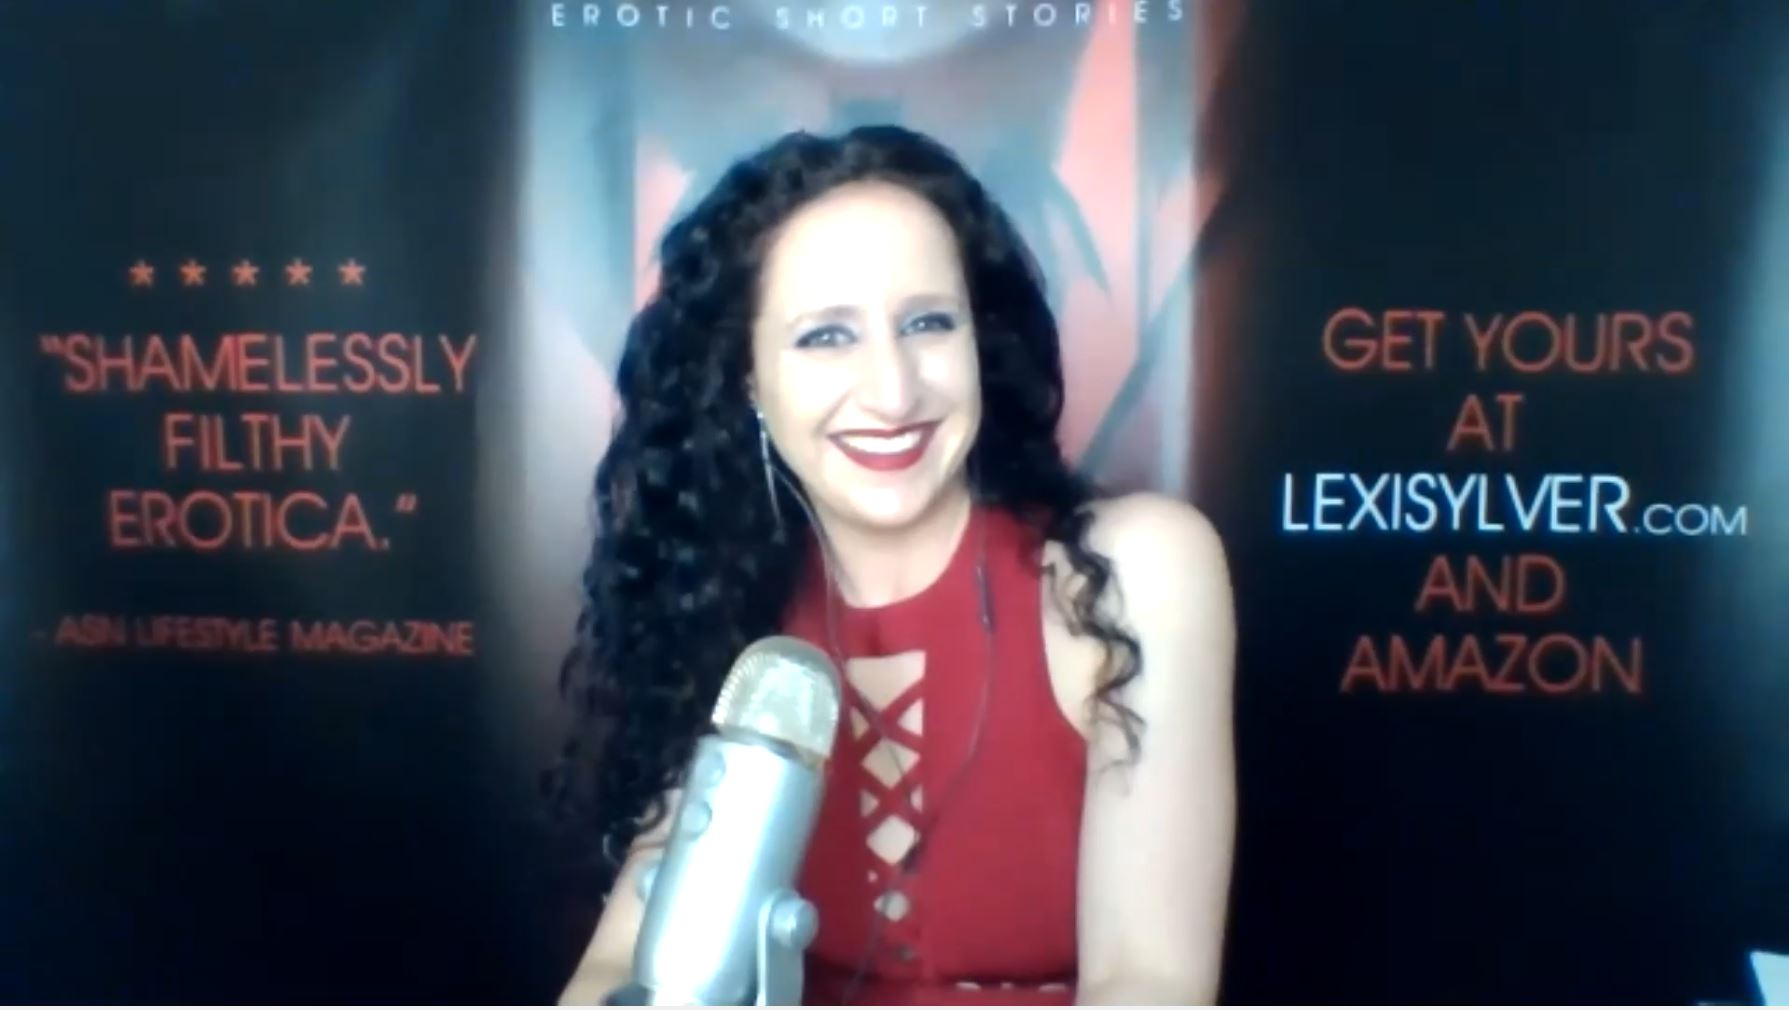 Lexi Sylver Erotica LIVE Cocktails and Erotic Tales